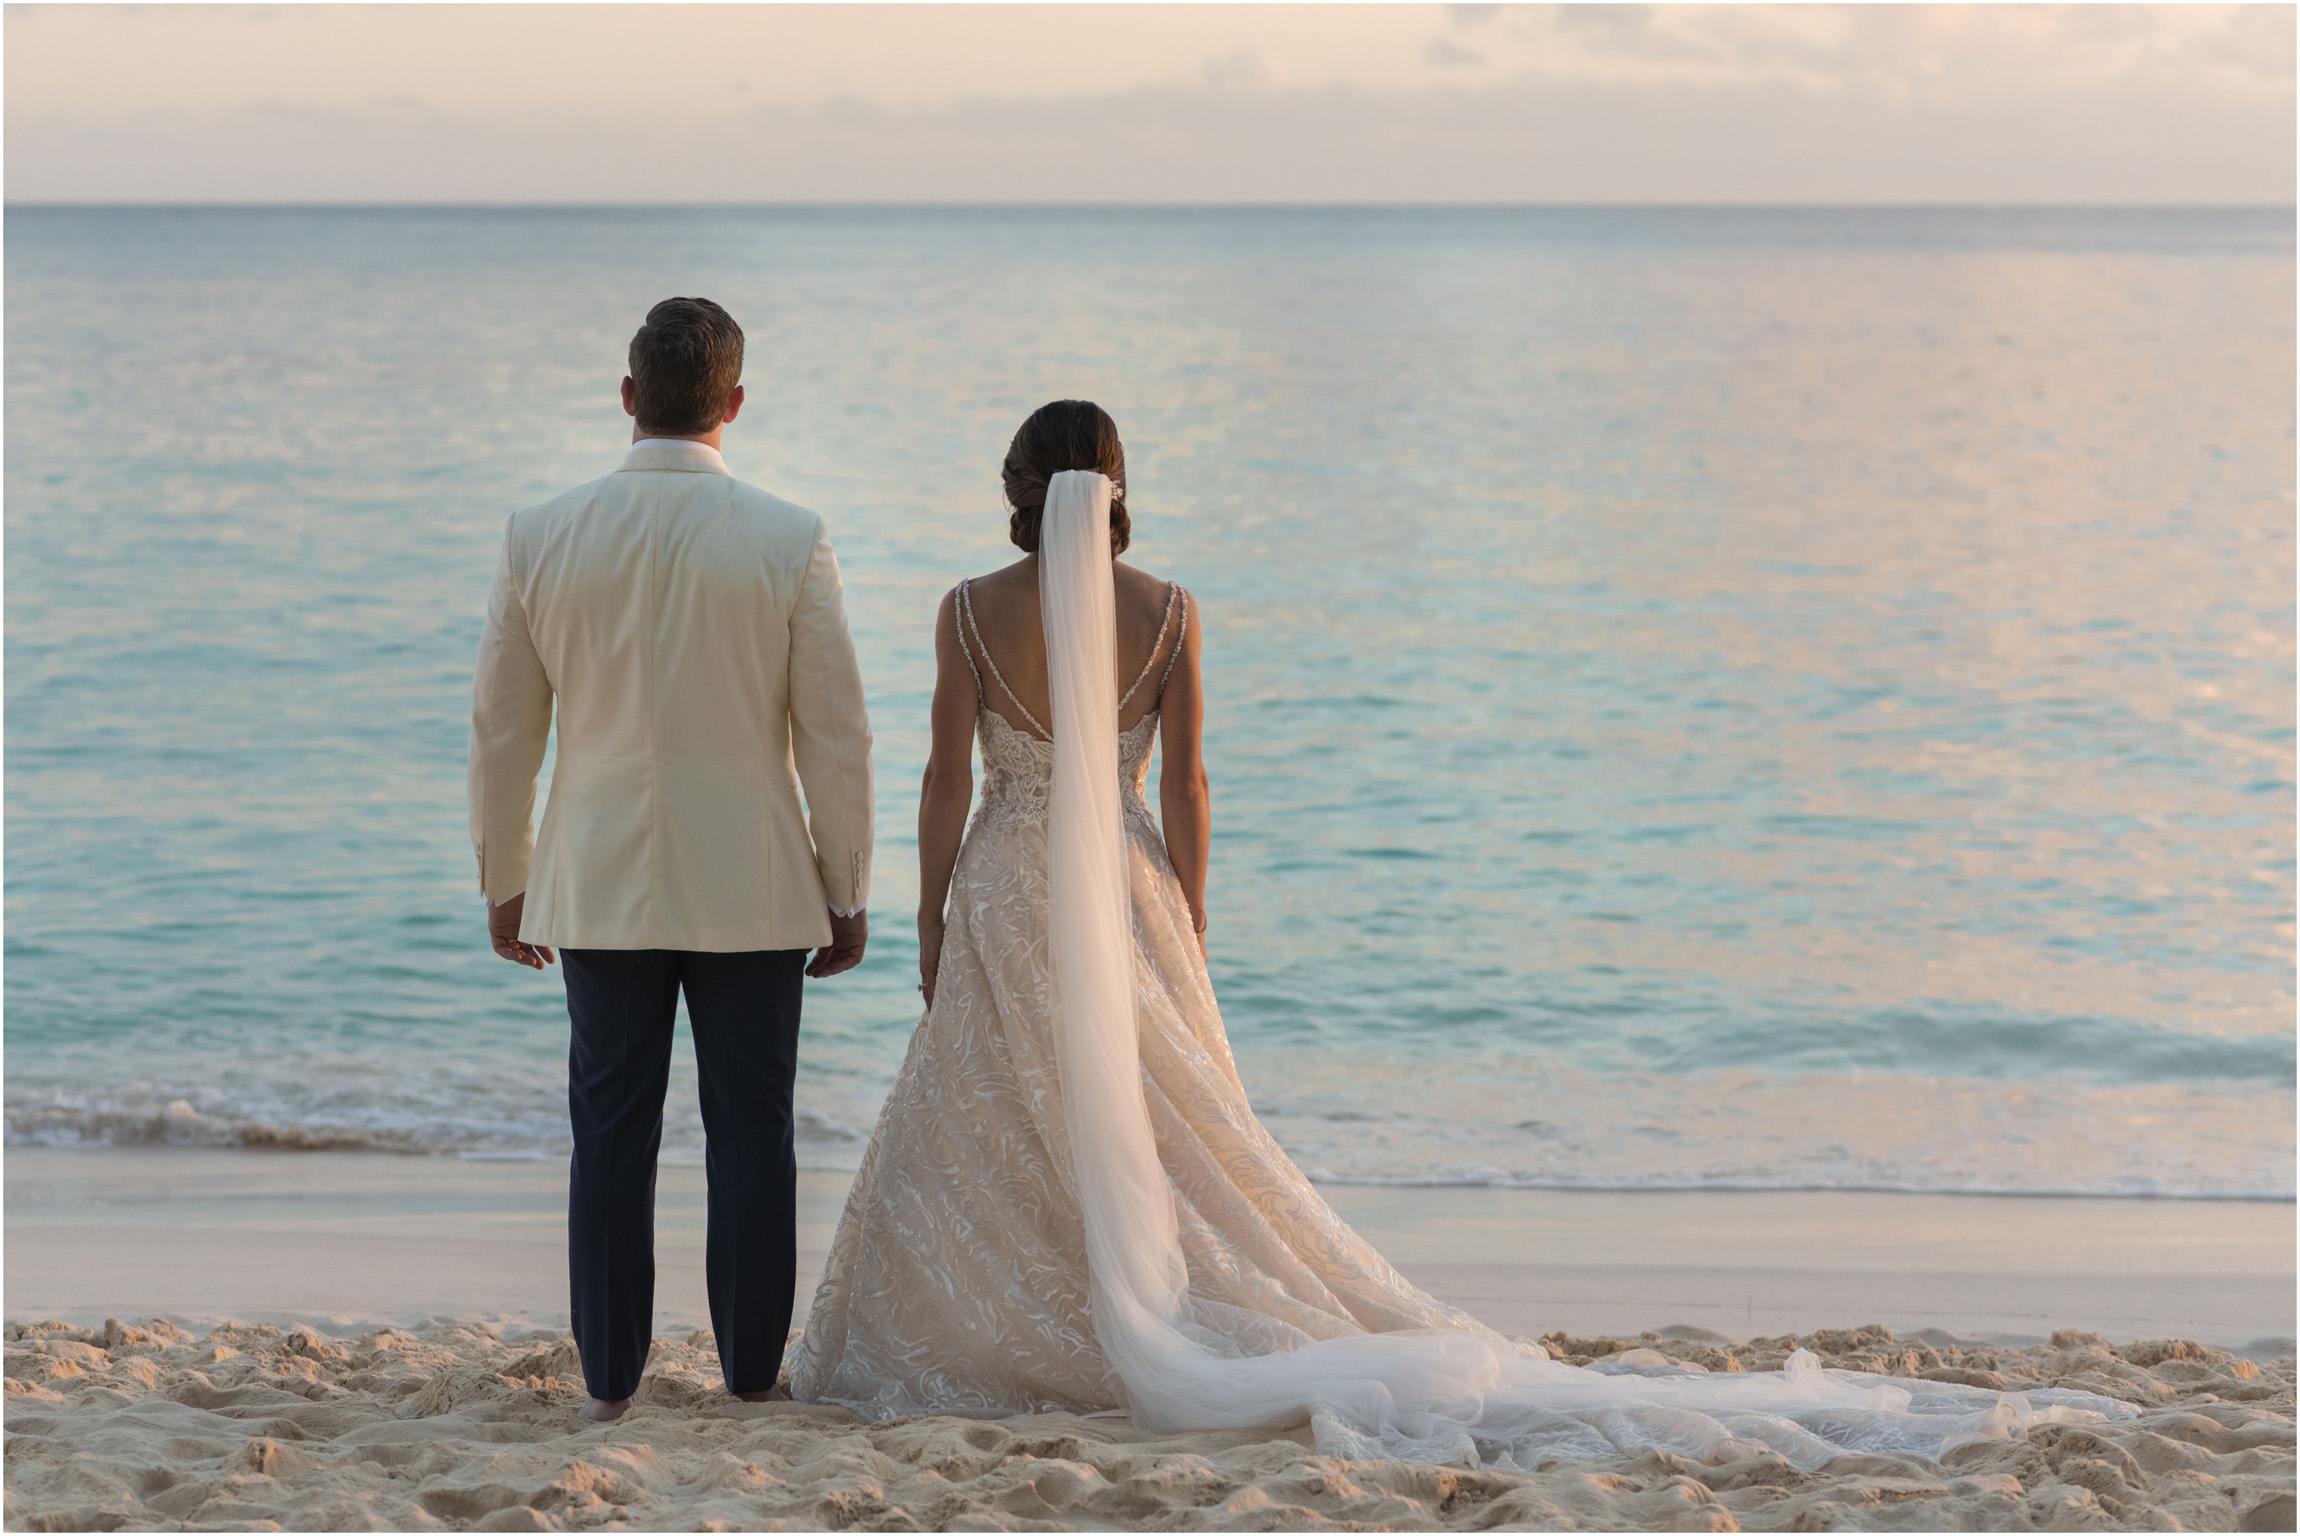 ©Fiander+Foto_Bermuda+Wedding+Photographer_The+Reefs_Taylor_Tedd_147.jpg